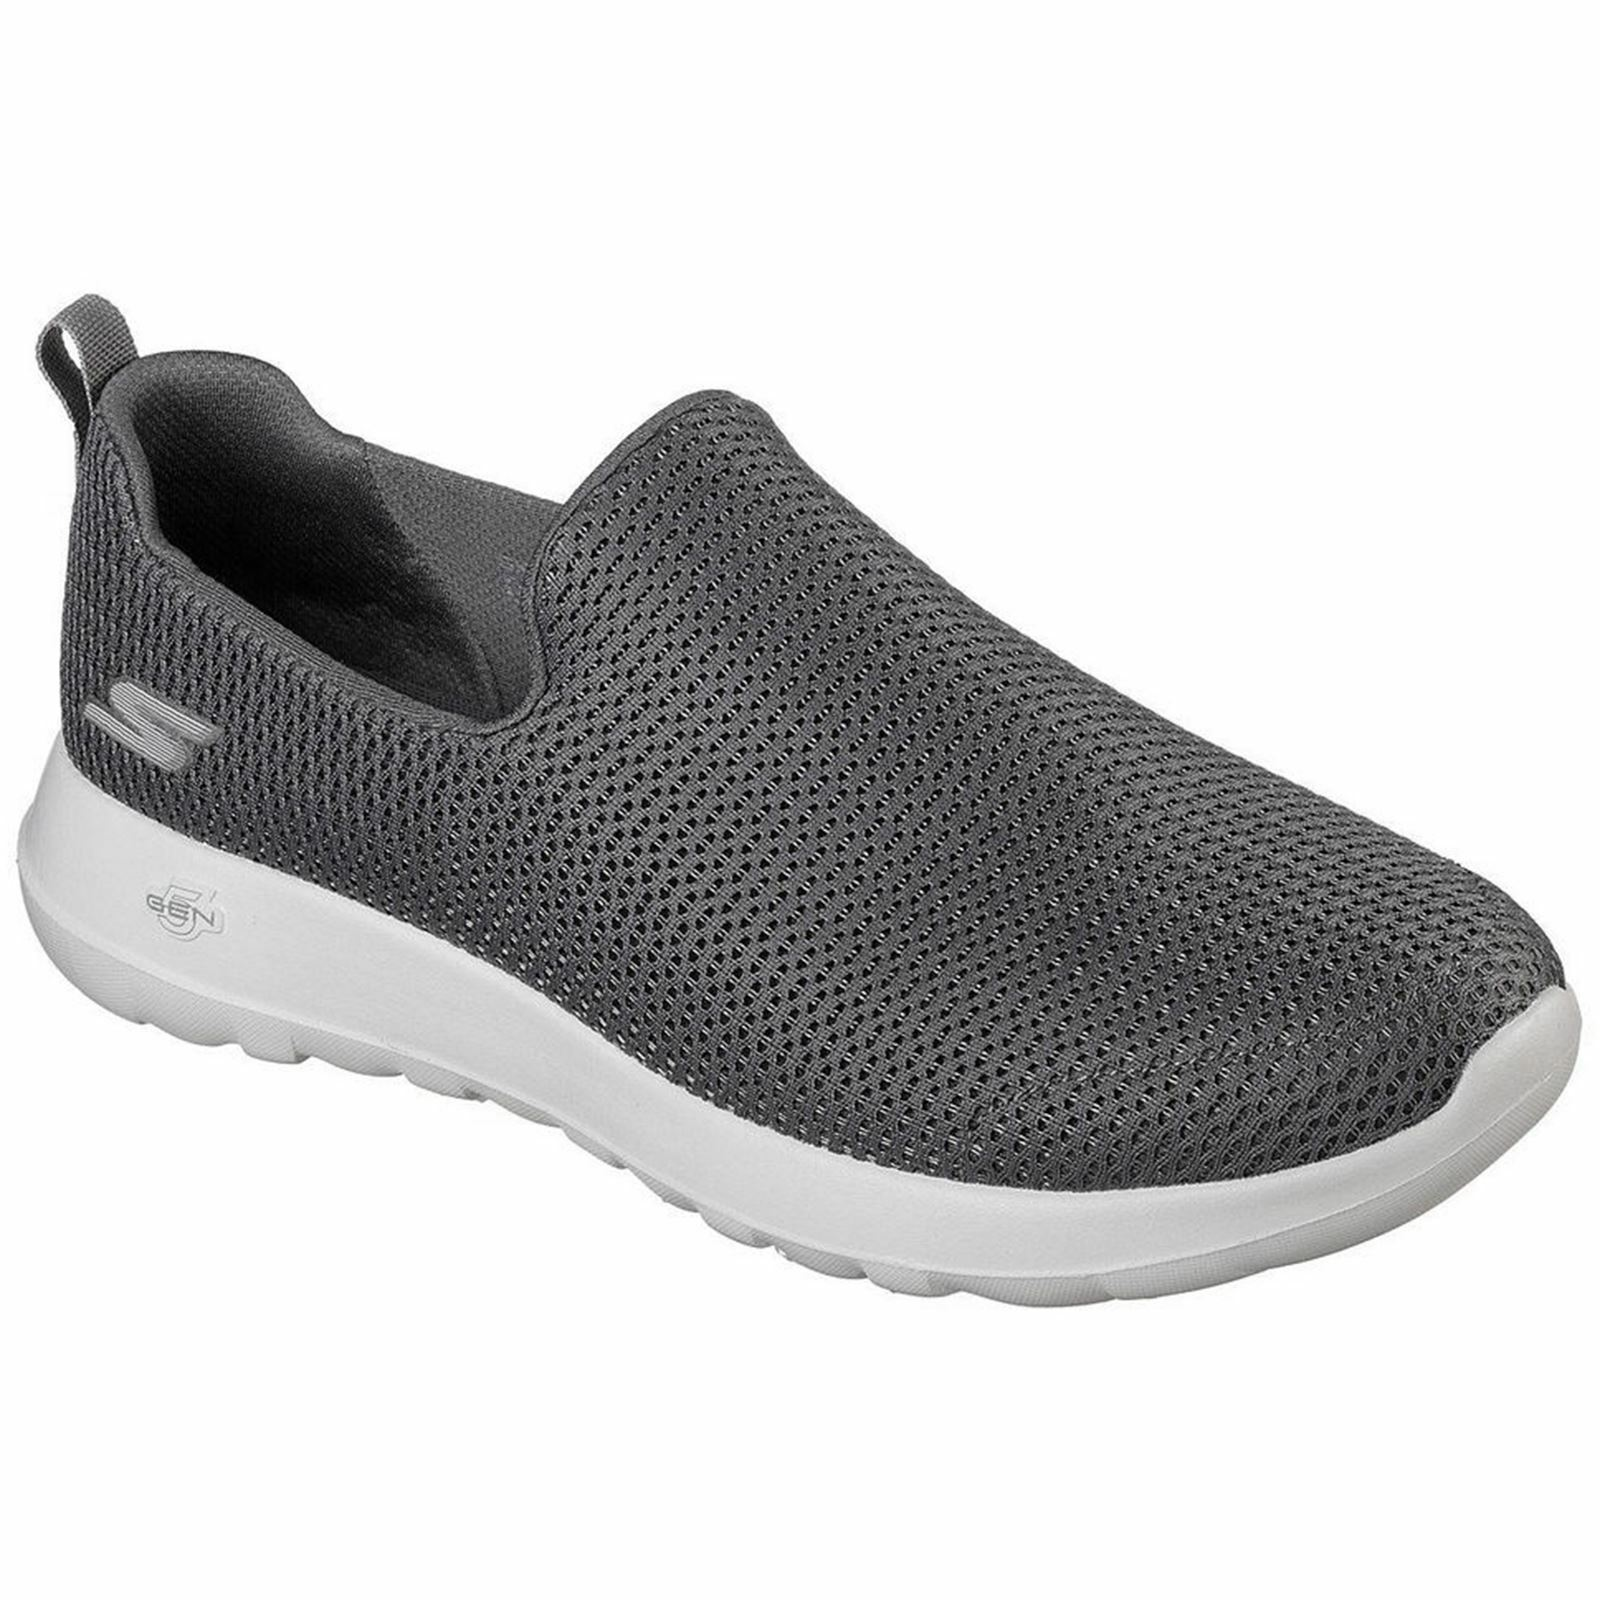 Skechers GO Walk Max Charcoal Mens Mesh Slip-on Low-top Sneakers Trainers